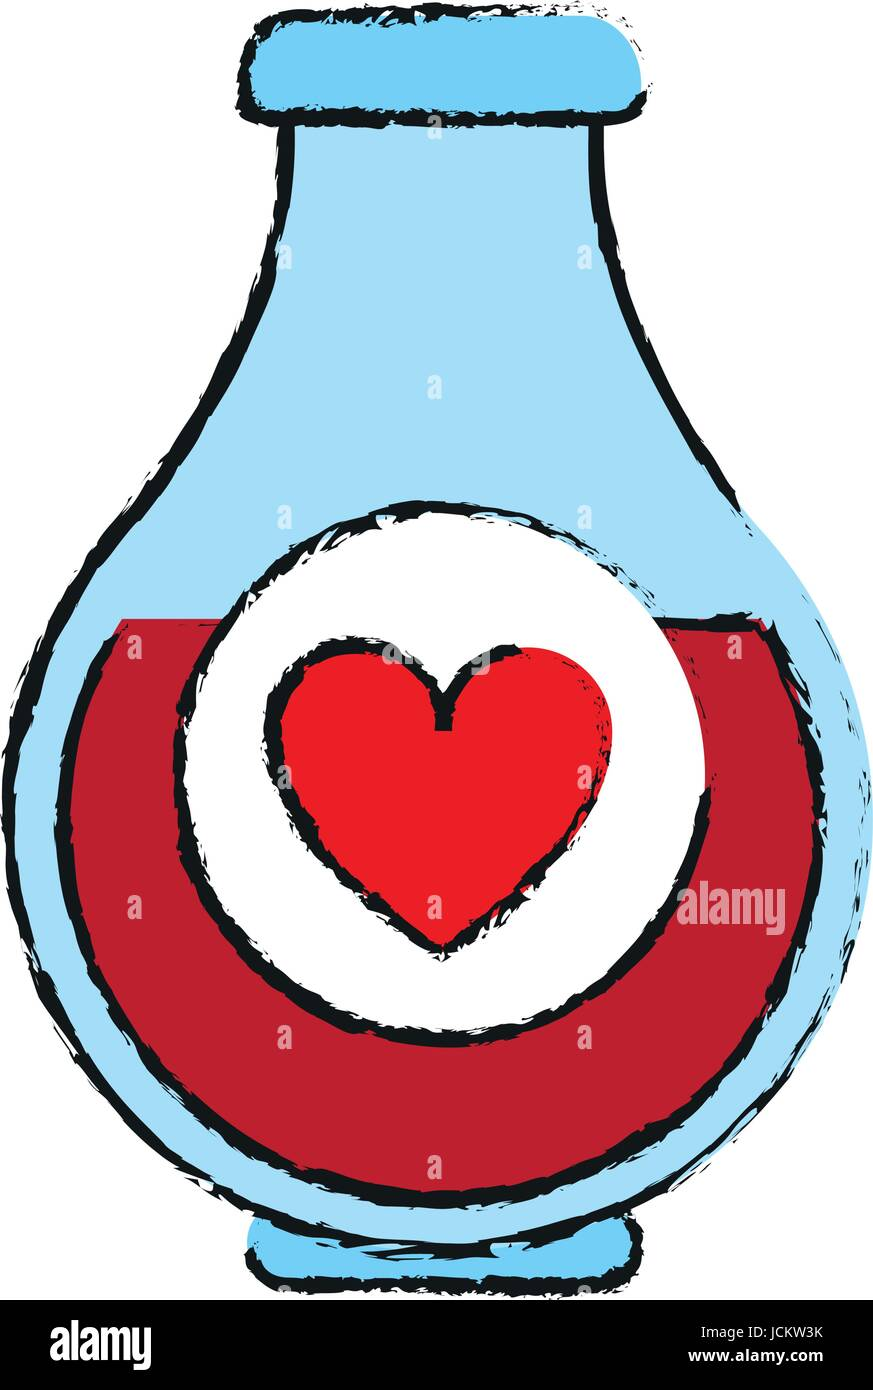 heart labeled flask or potion love valentines day related